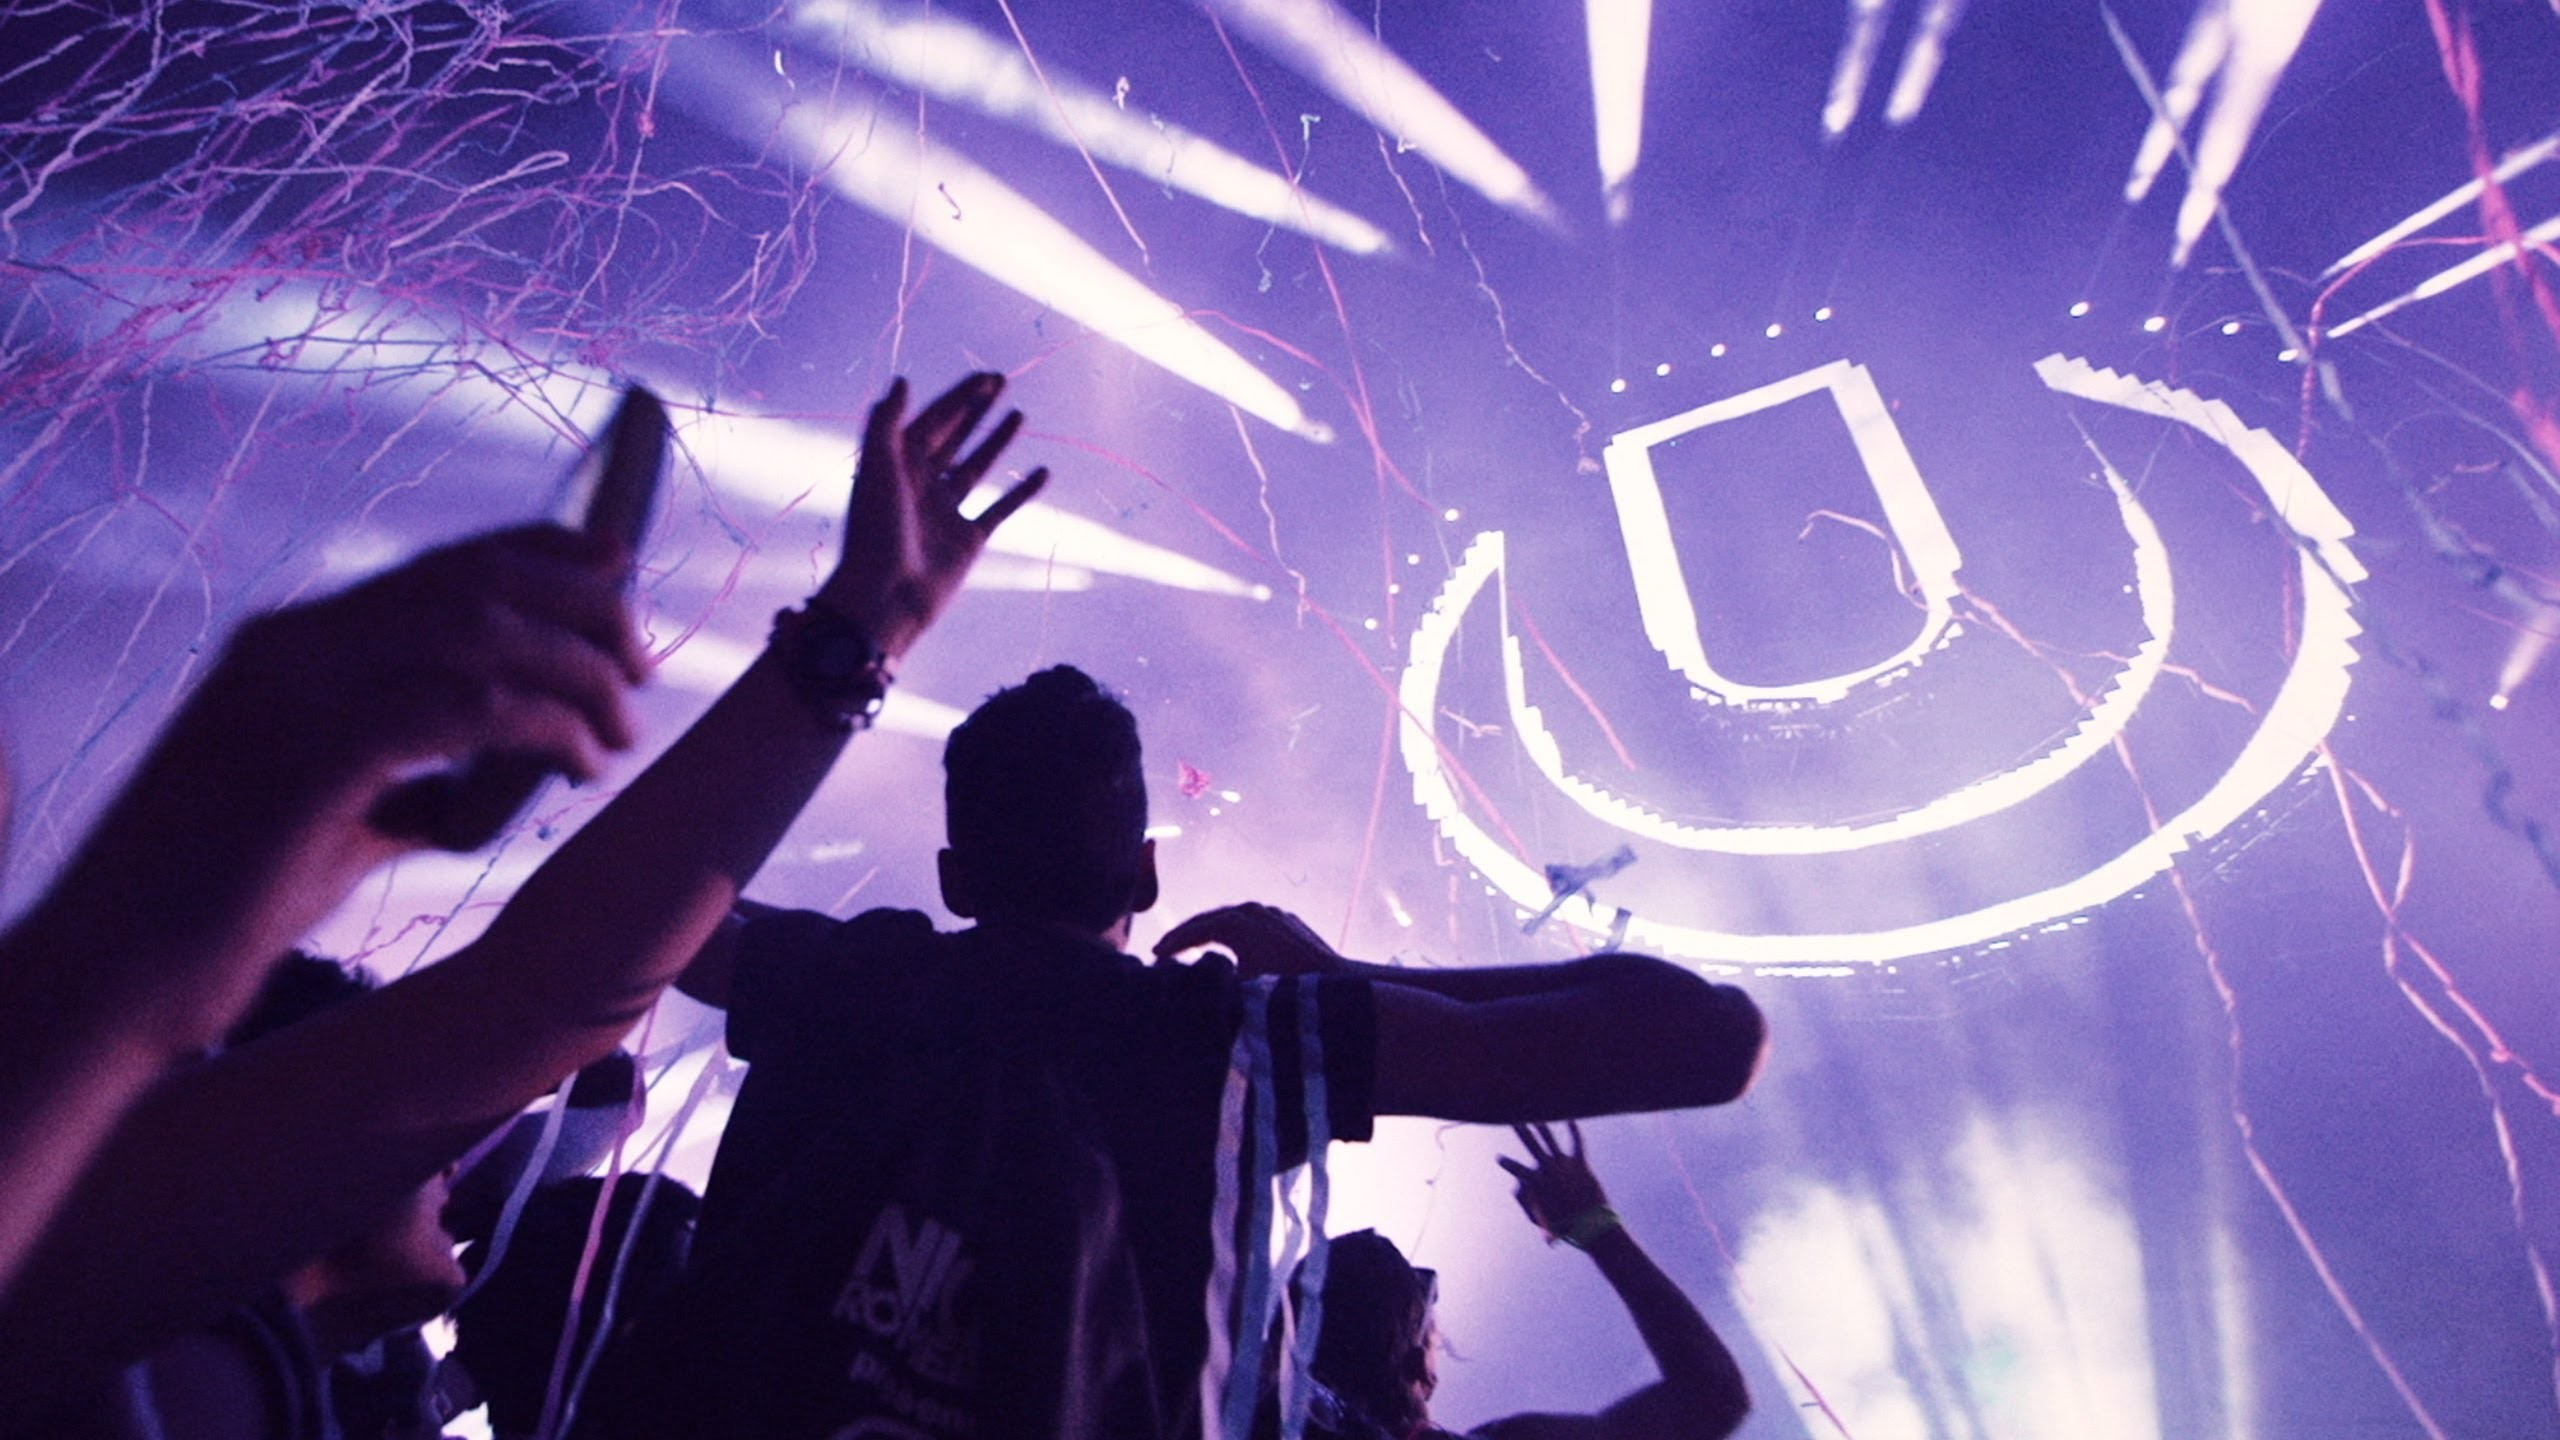 2560x1440 Check out the complete Ultra Music Festival schedule and line-up